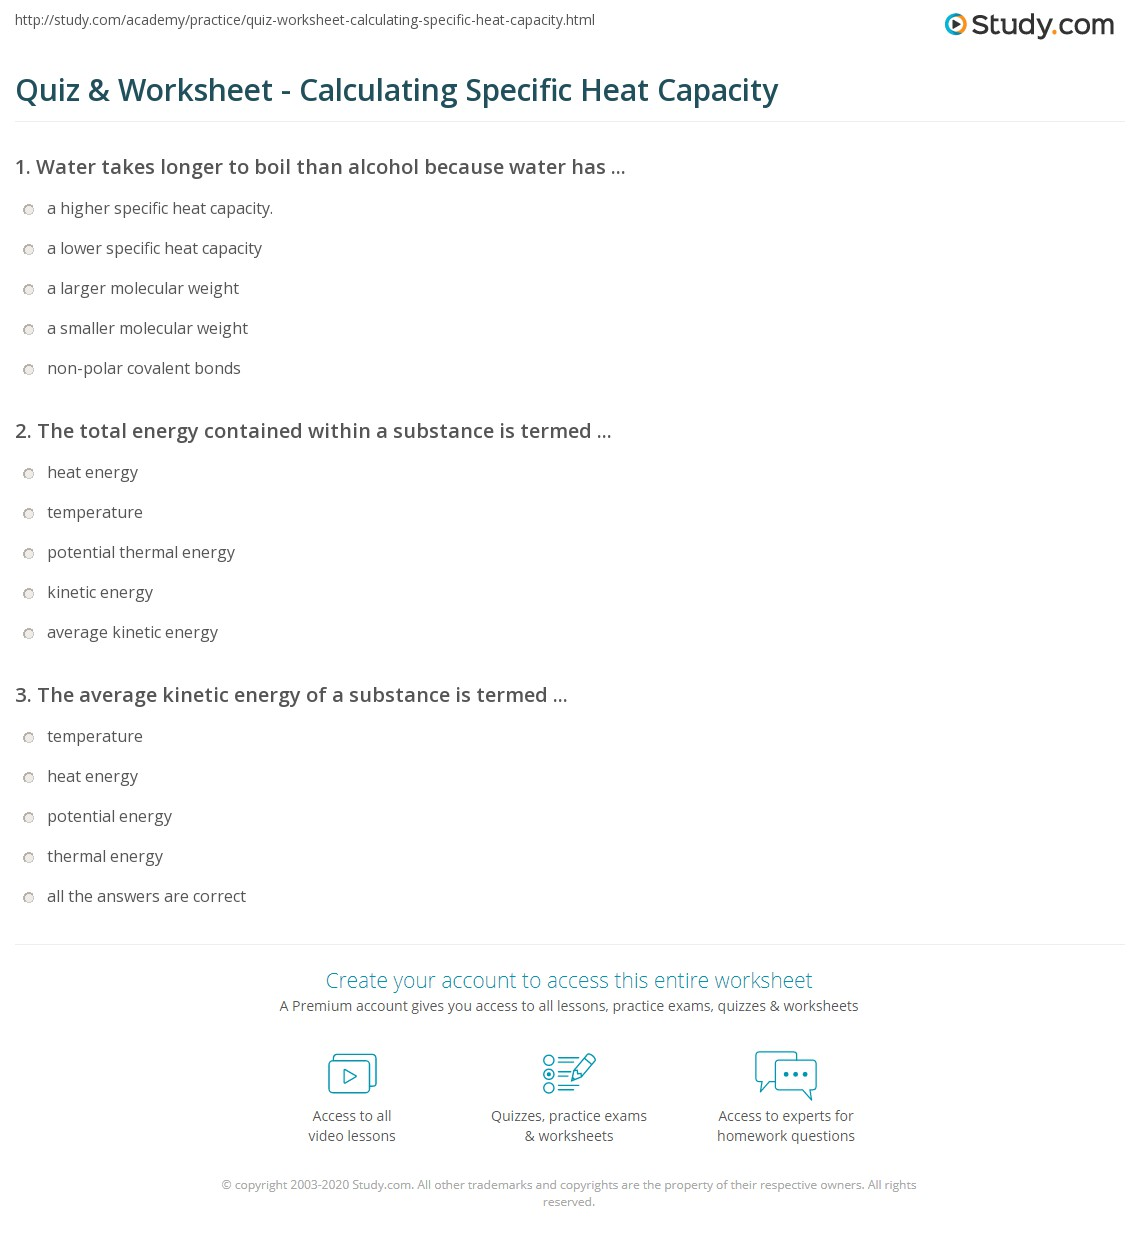 Quiz & Worksheet Calculating Specific Heat Capacity